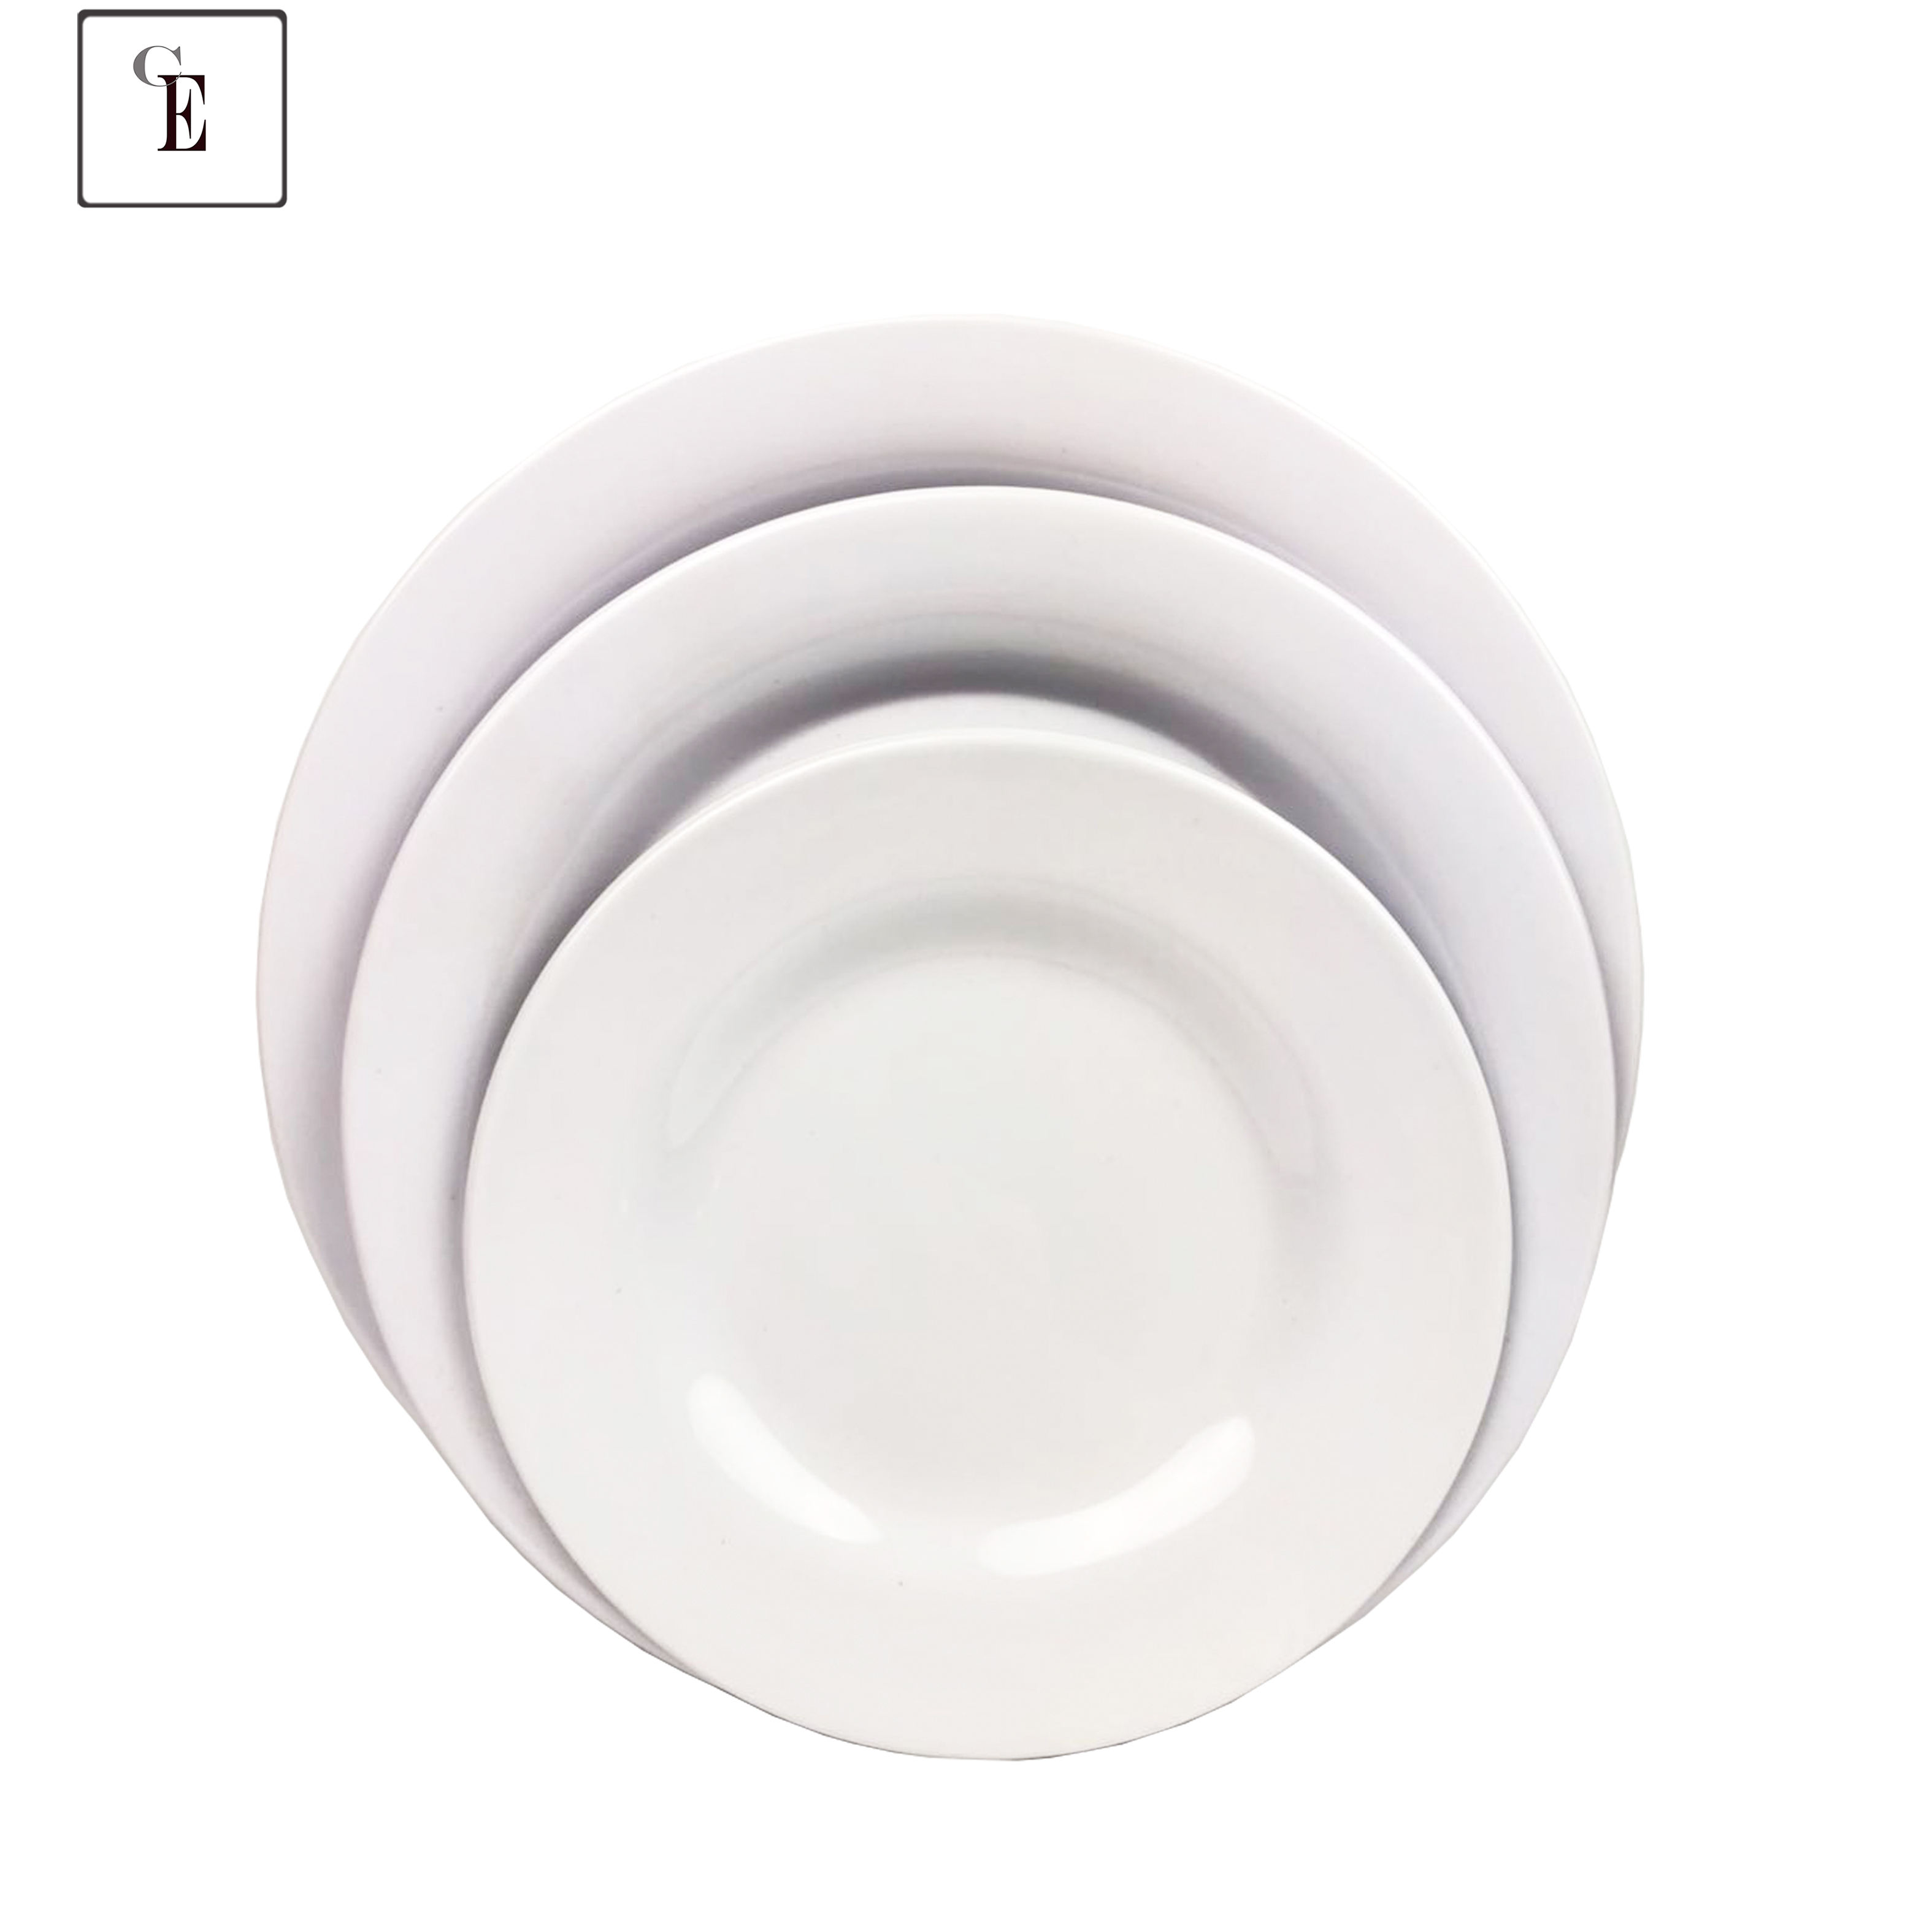 Food Grade Wholesale Plastic Melamine Dish Disposable Round 5 ps Plastic Plate